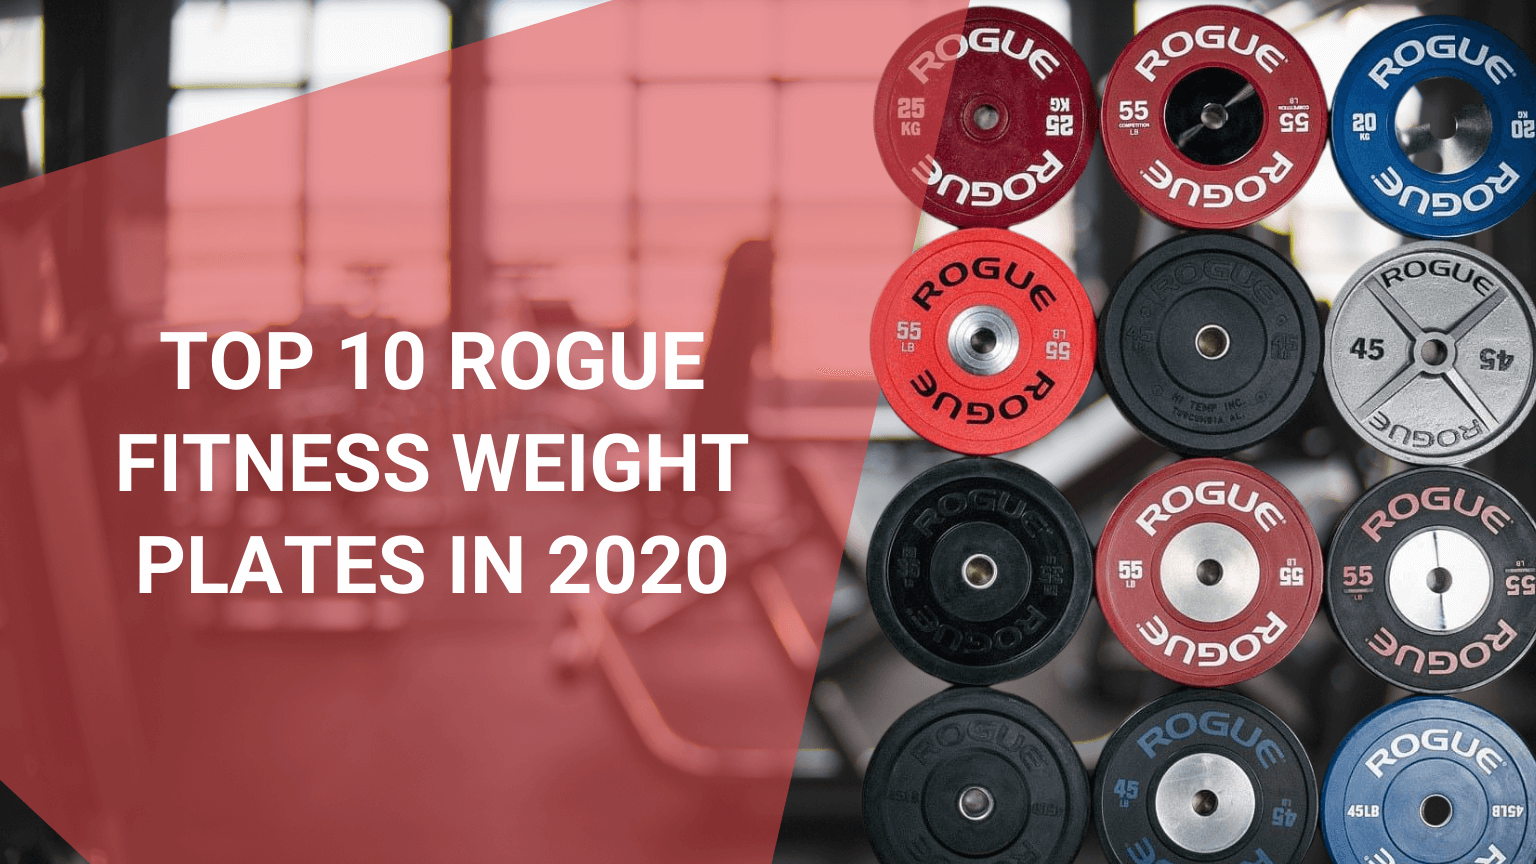 Top 10 Rogue Fitness Weight Plates in 2020 - Oct 2021